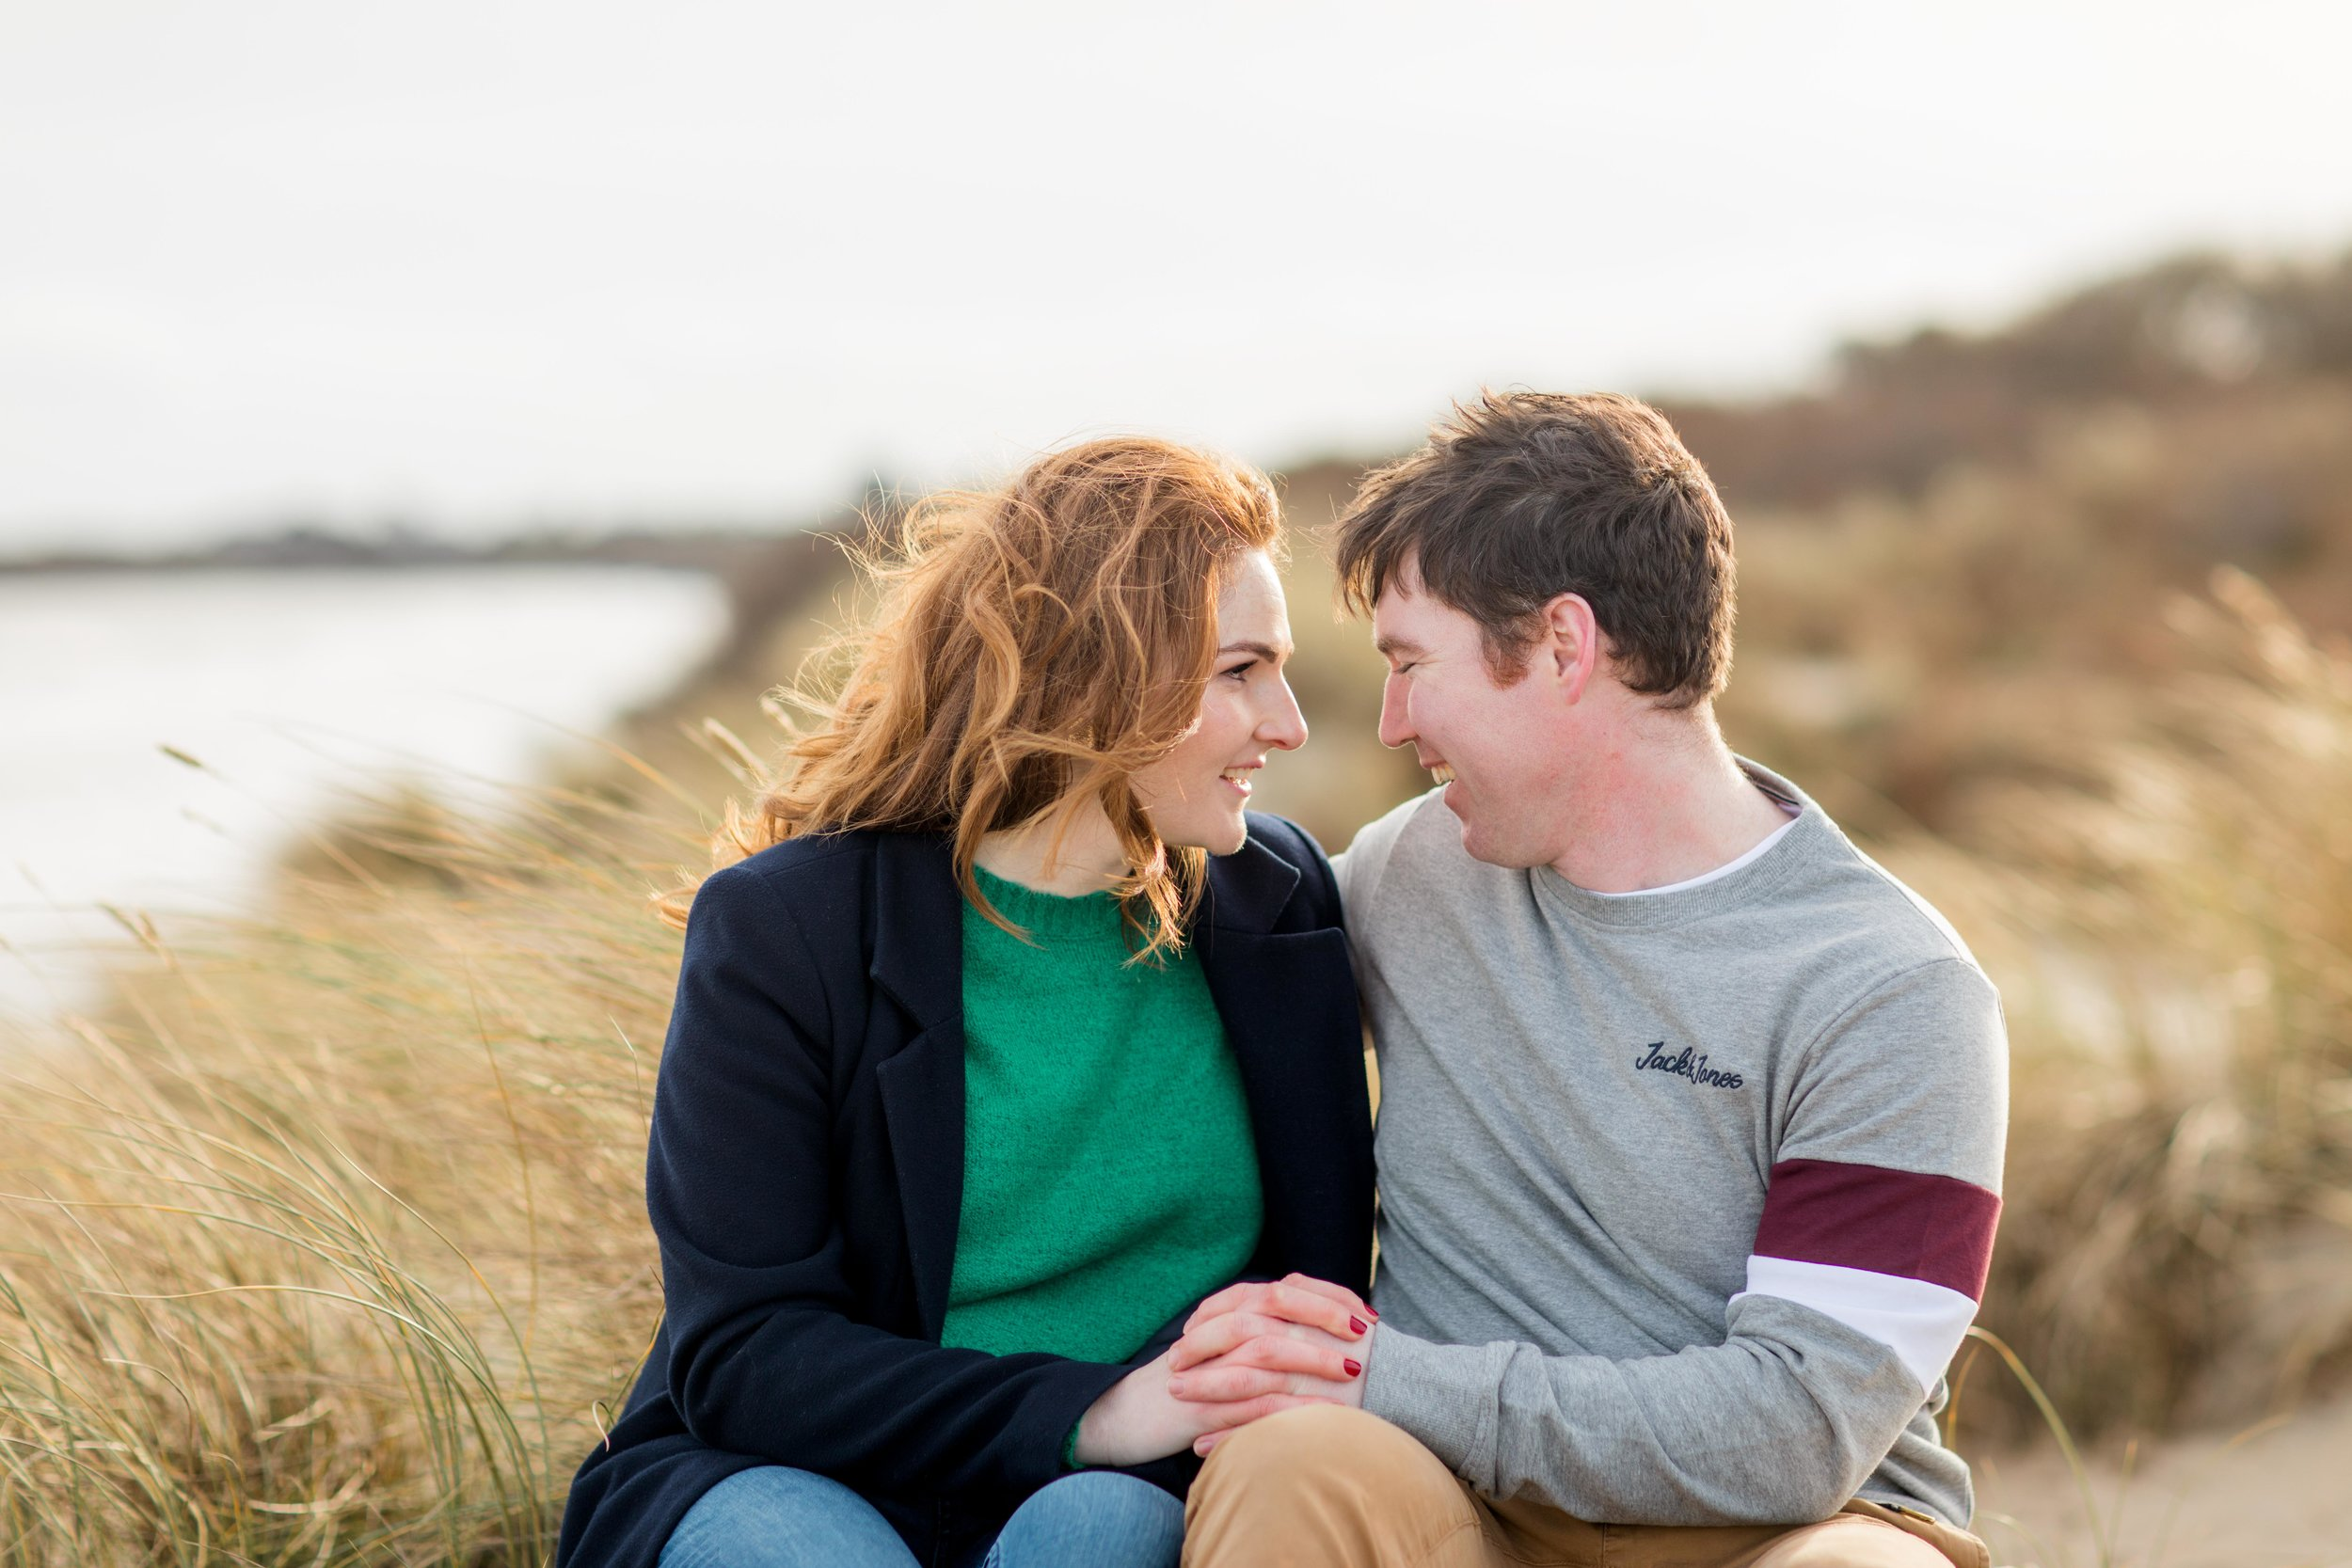 a couple sitting down on a sand dune in britta's bay ireland during a golden sunset with wind blowing through her red hair